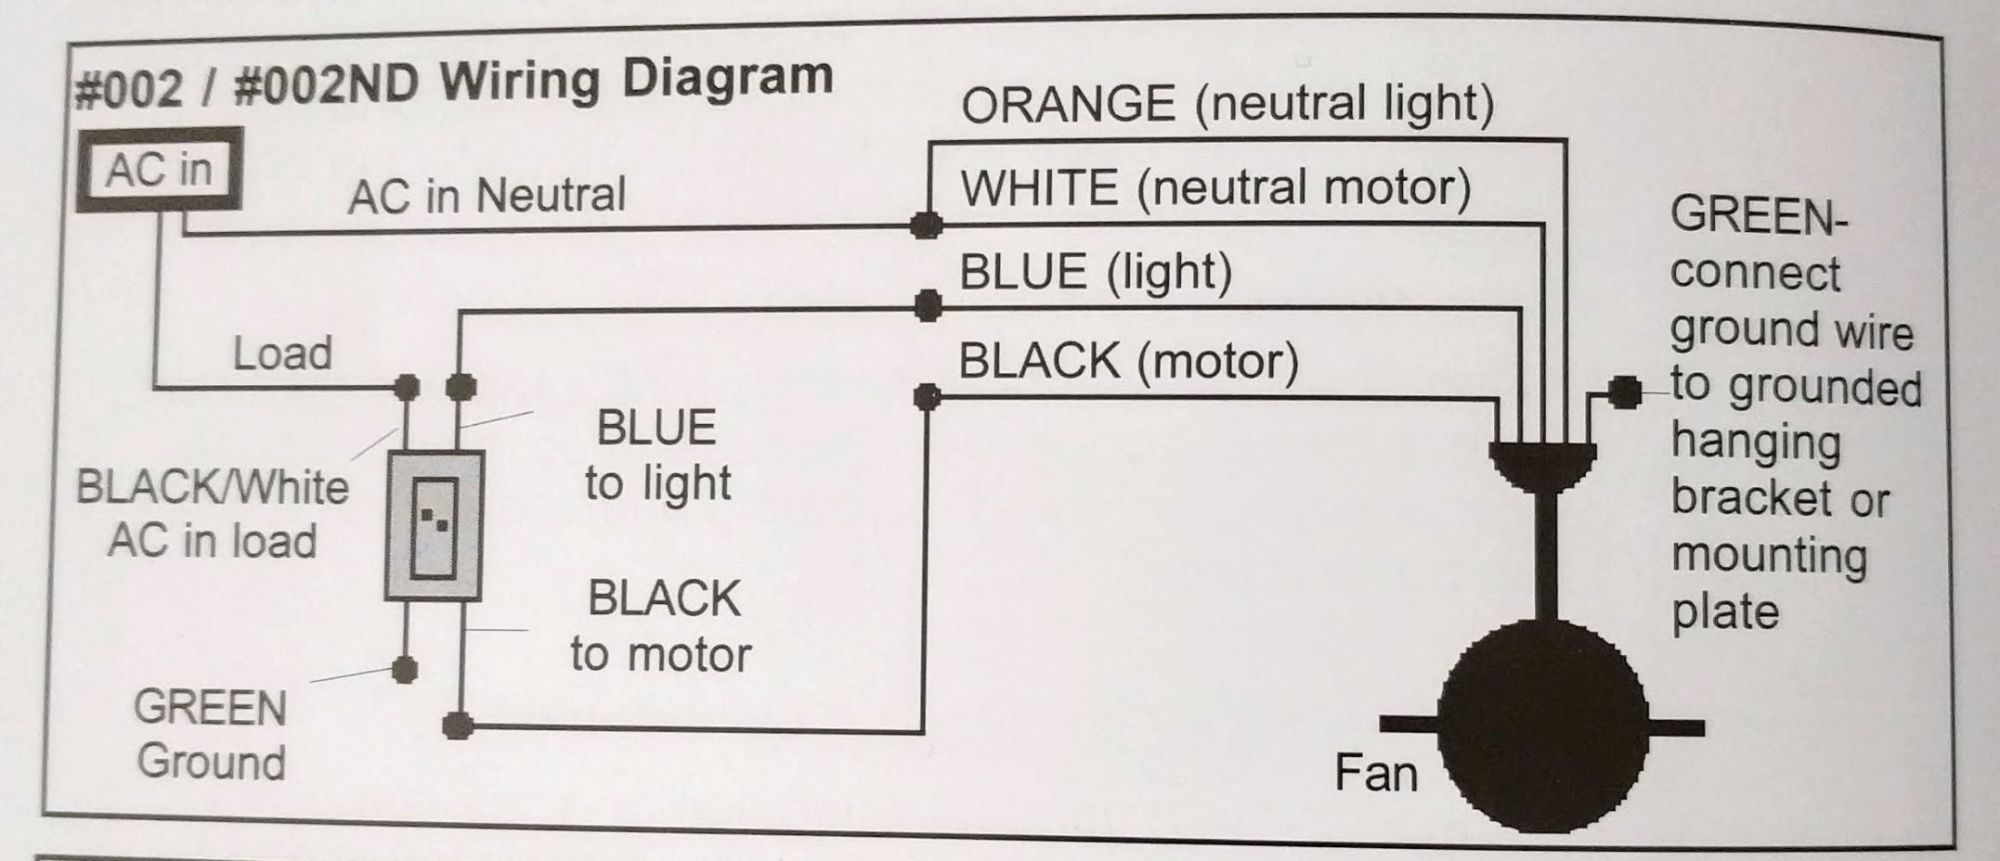 hight resolution of schematic wiring black white wiring diagram post electrical wiring colors red black white wiring diagram database